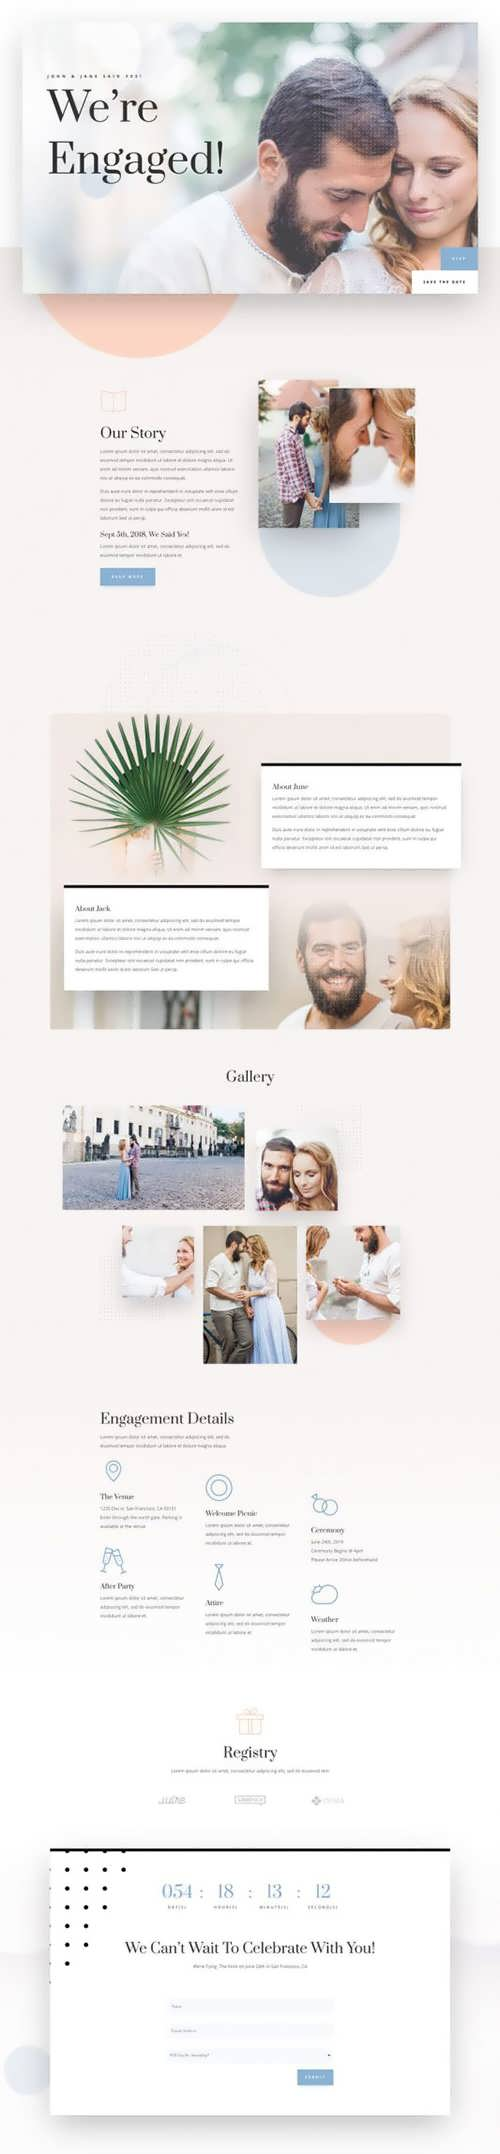 wedding engagement landing page